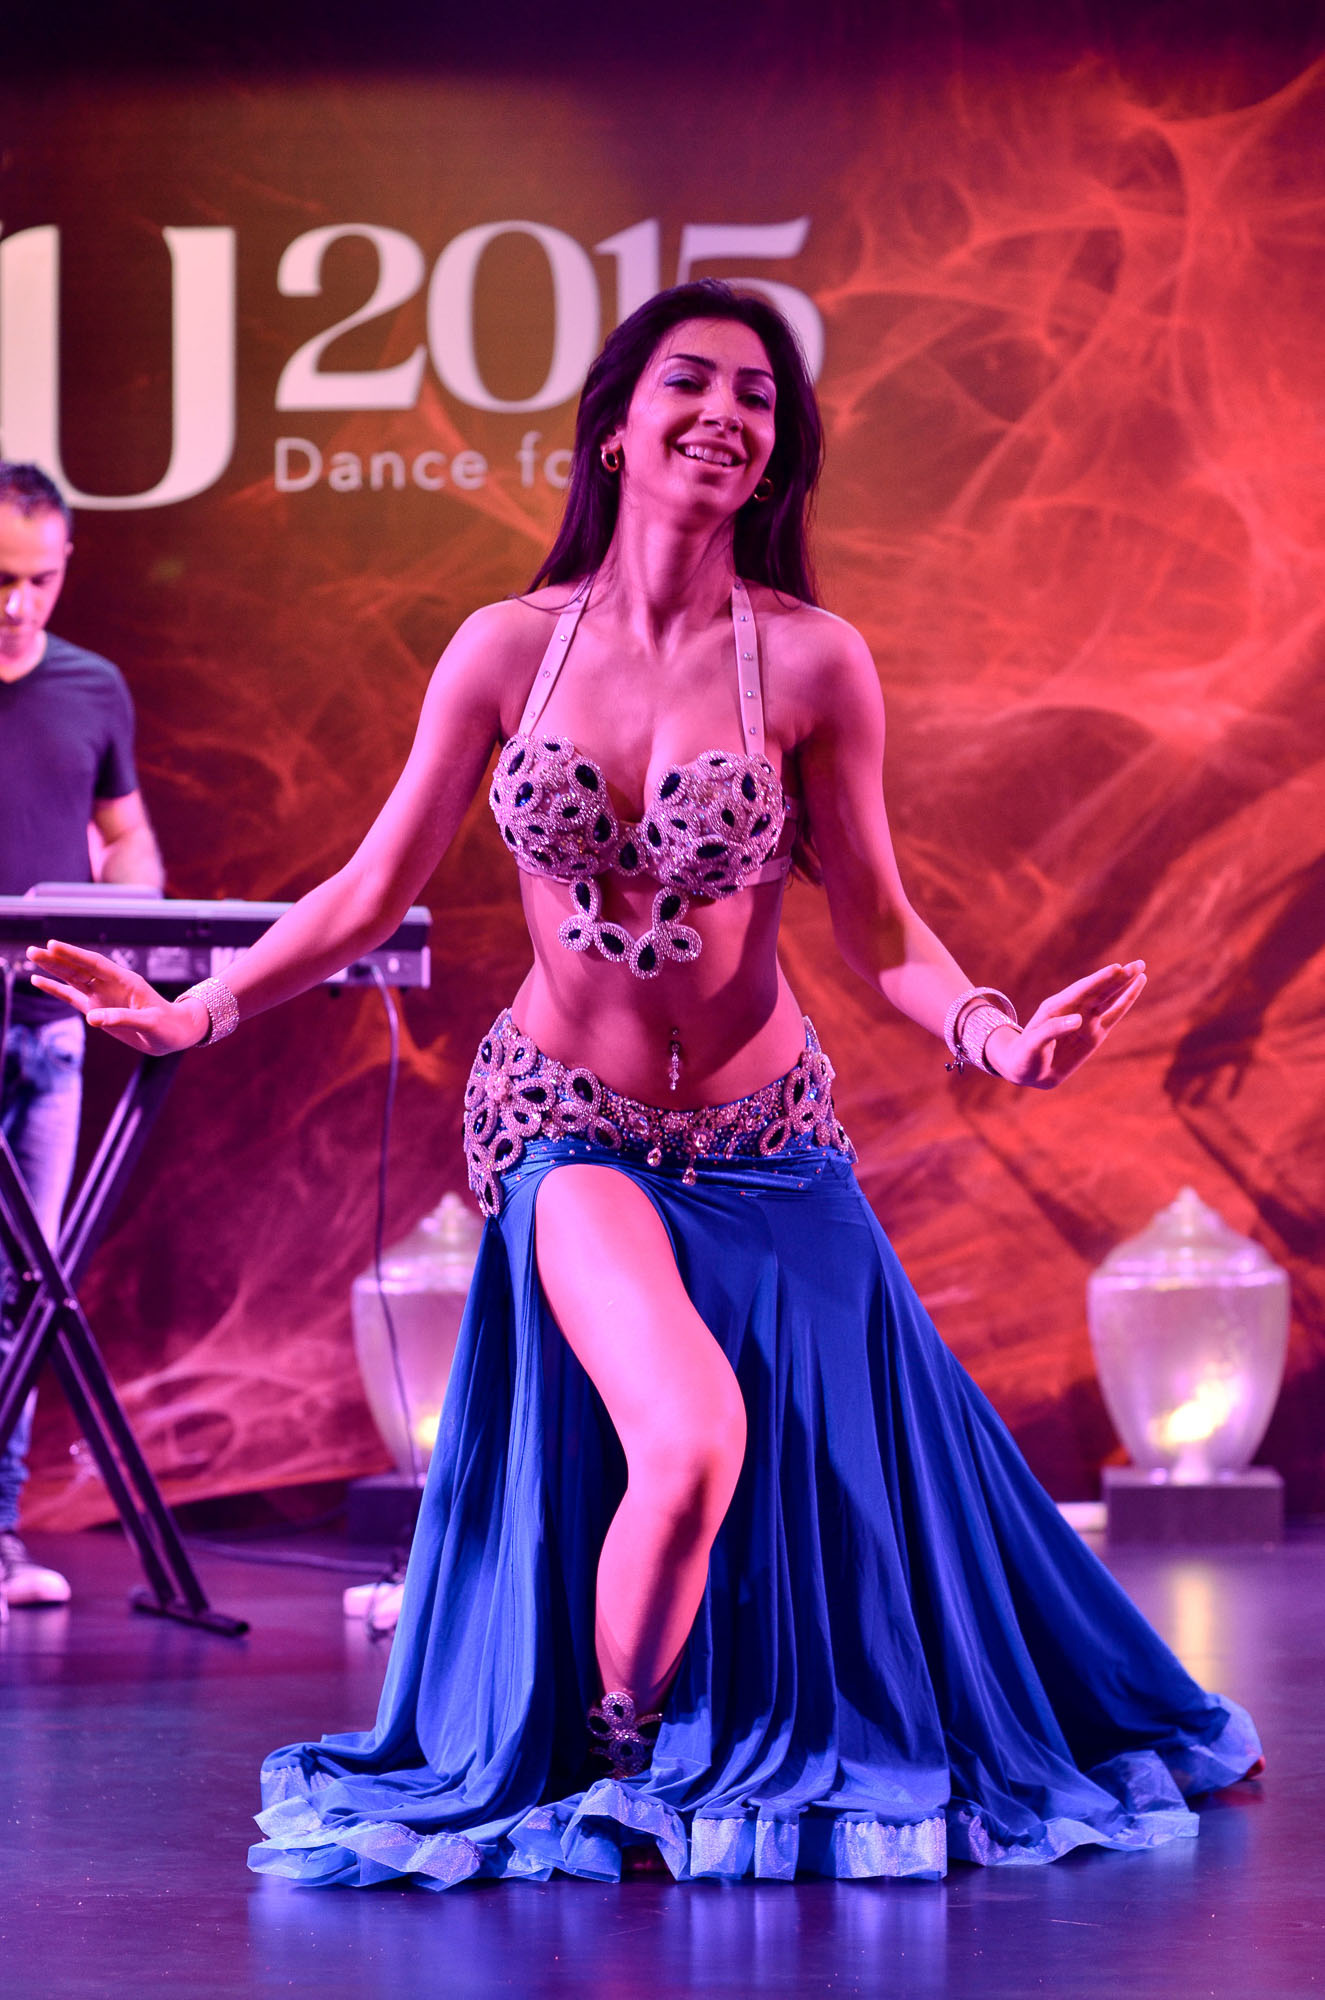 Digital photography of female belly dancer contestant